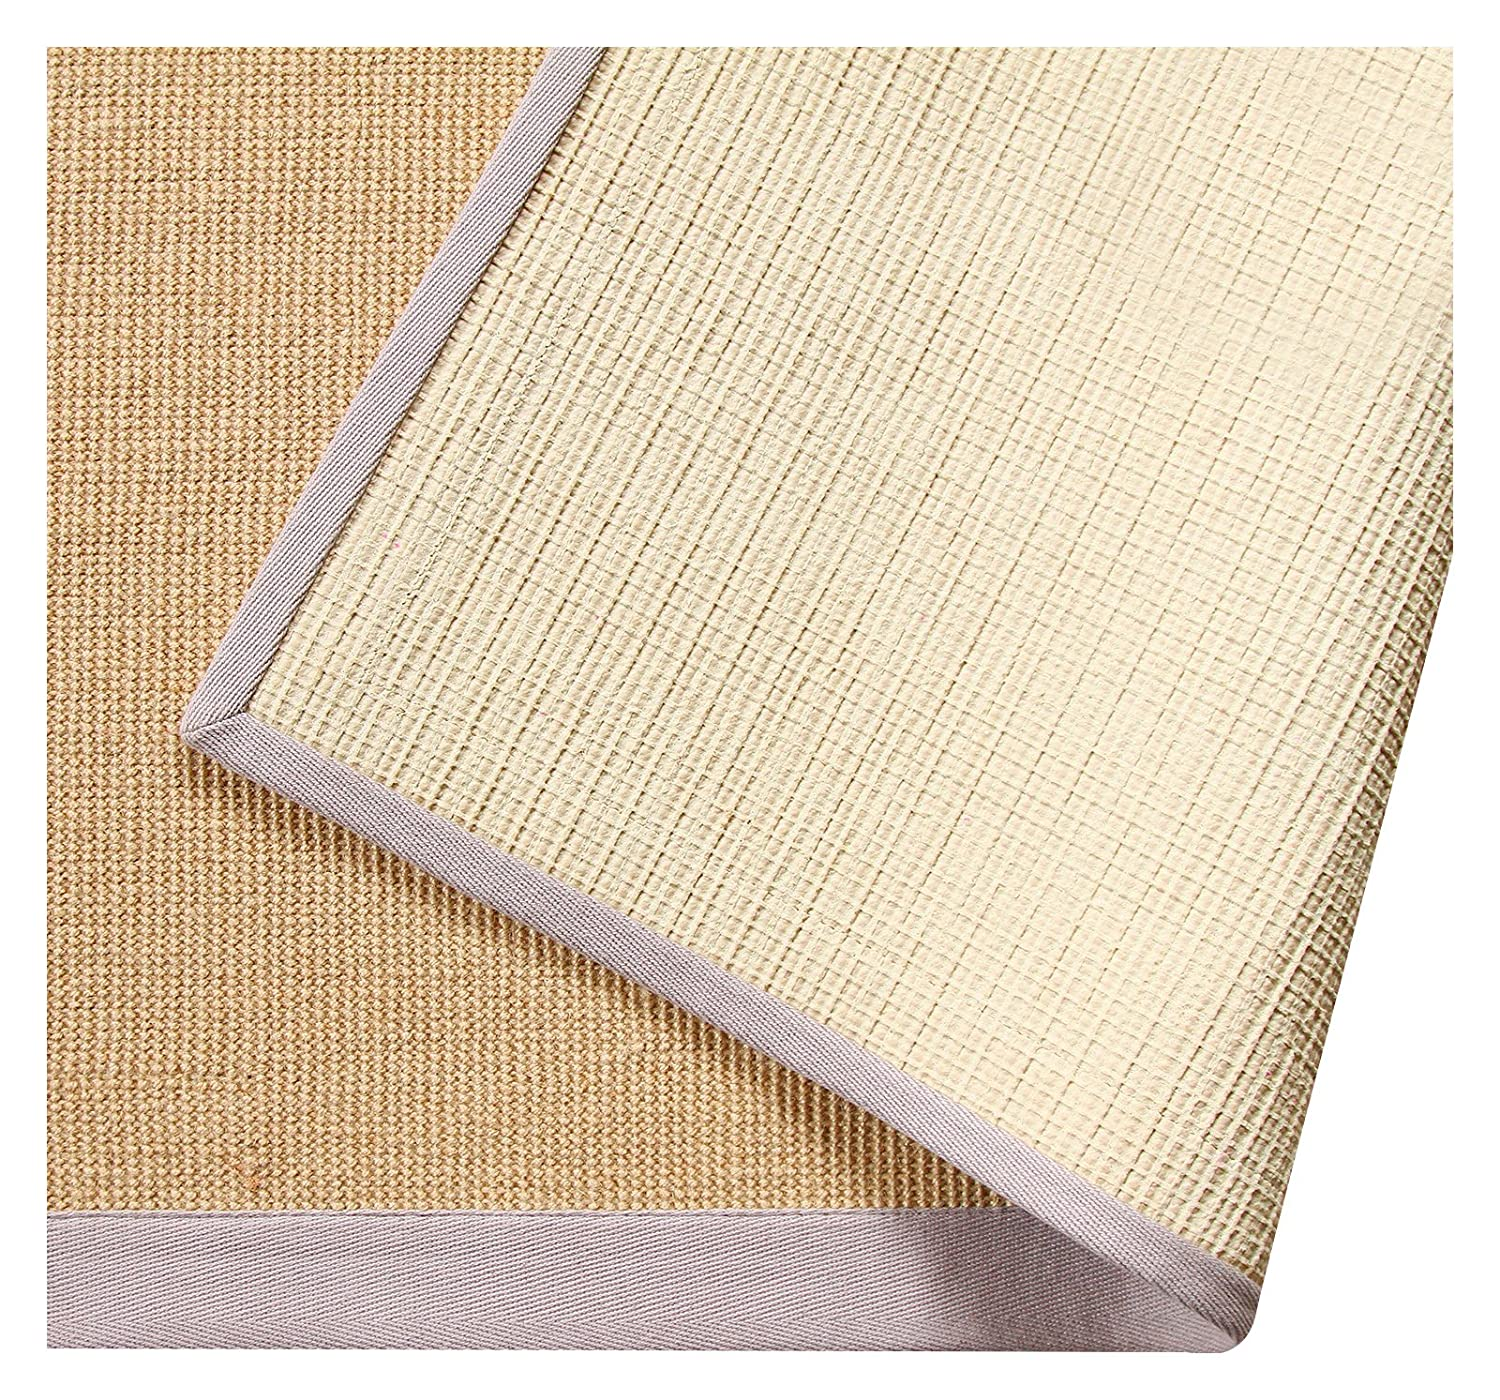 Review Jute Yoga Mat | Best Mat for Yoga